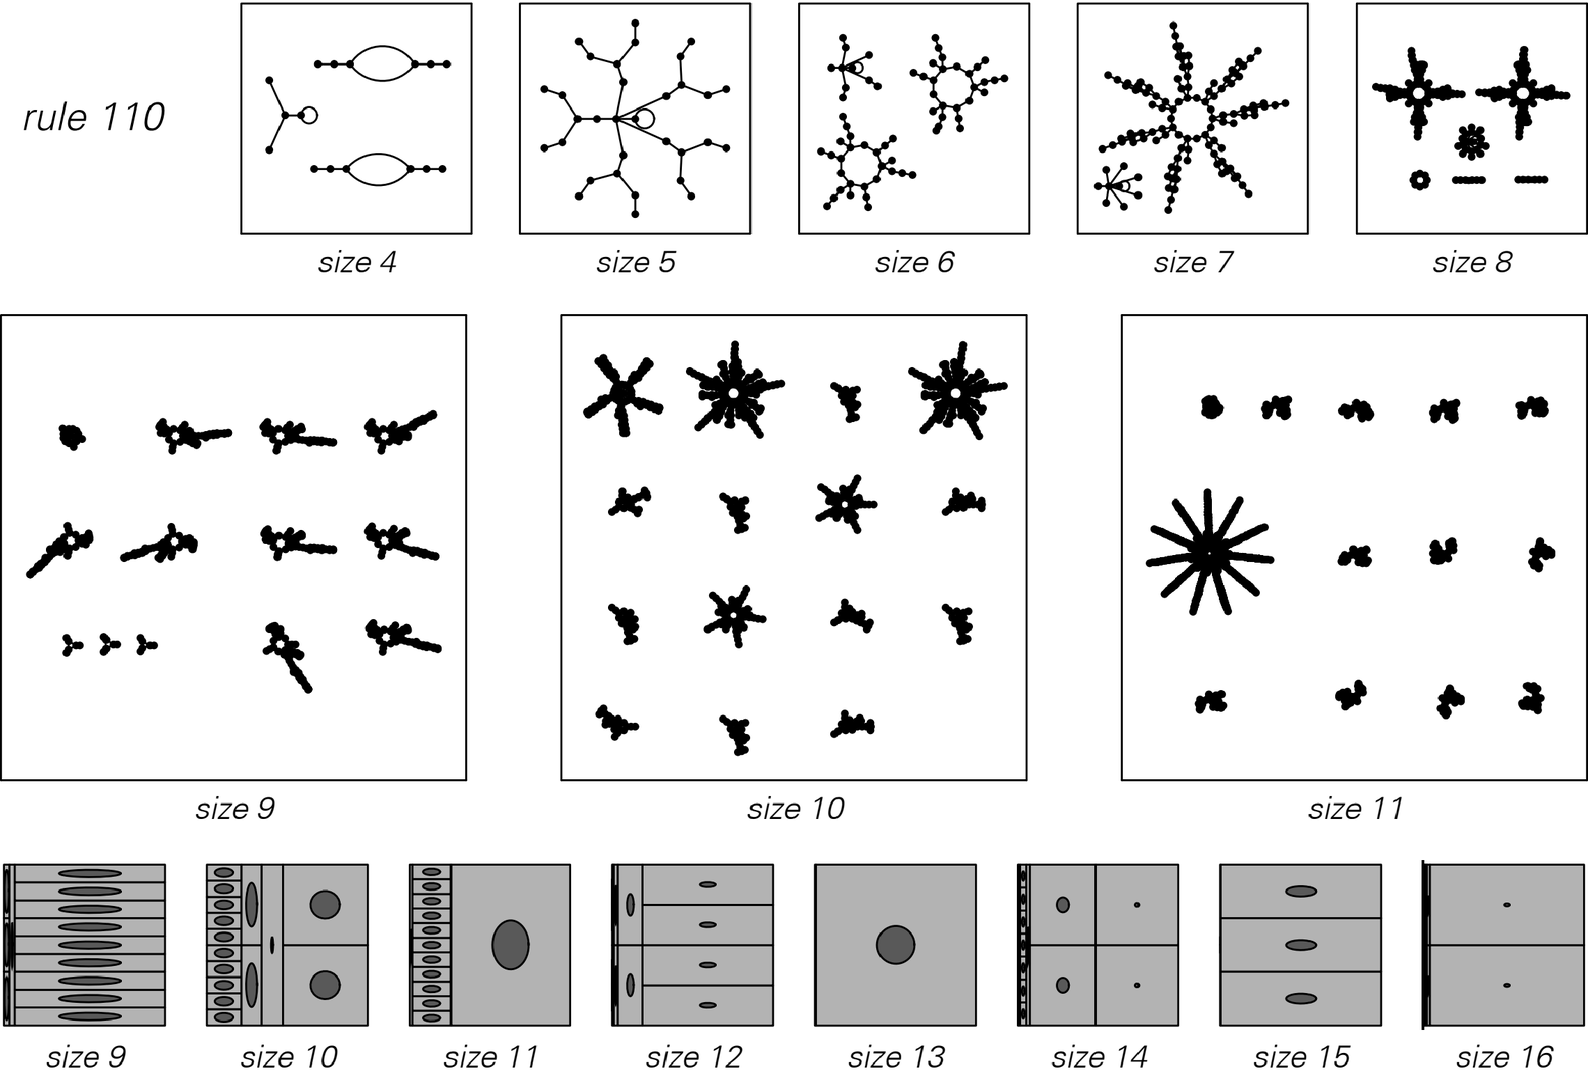 [State networks for] systems of limited size image 7